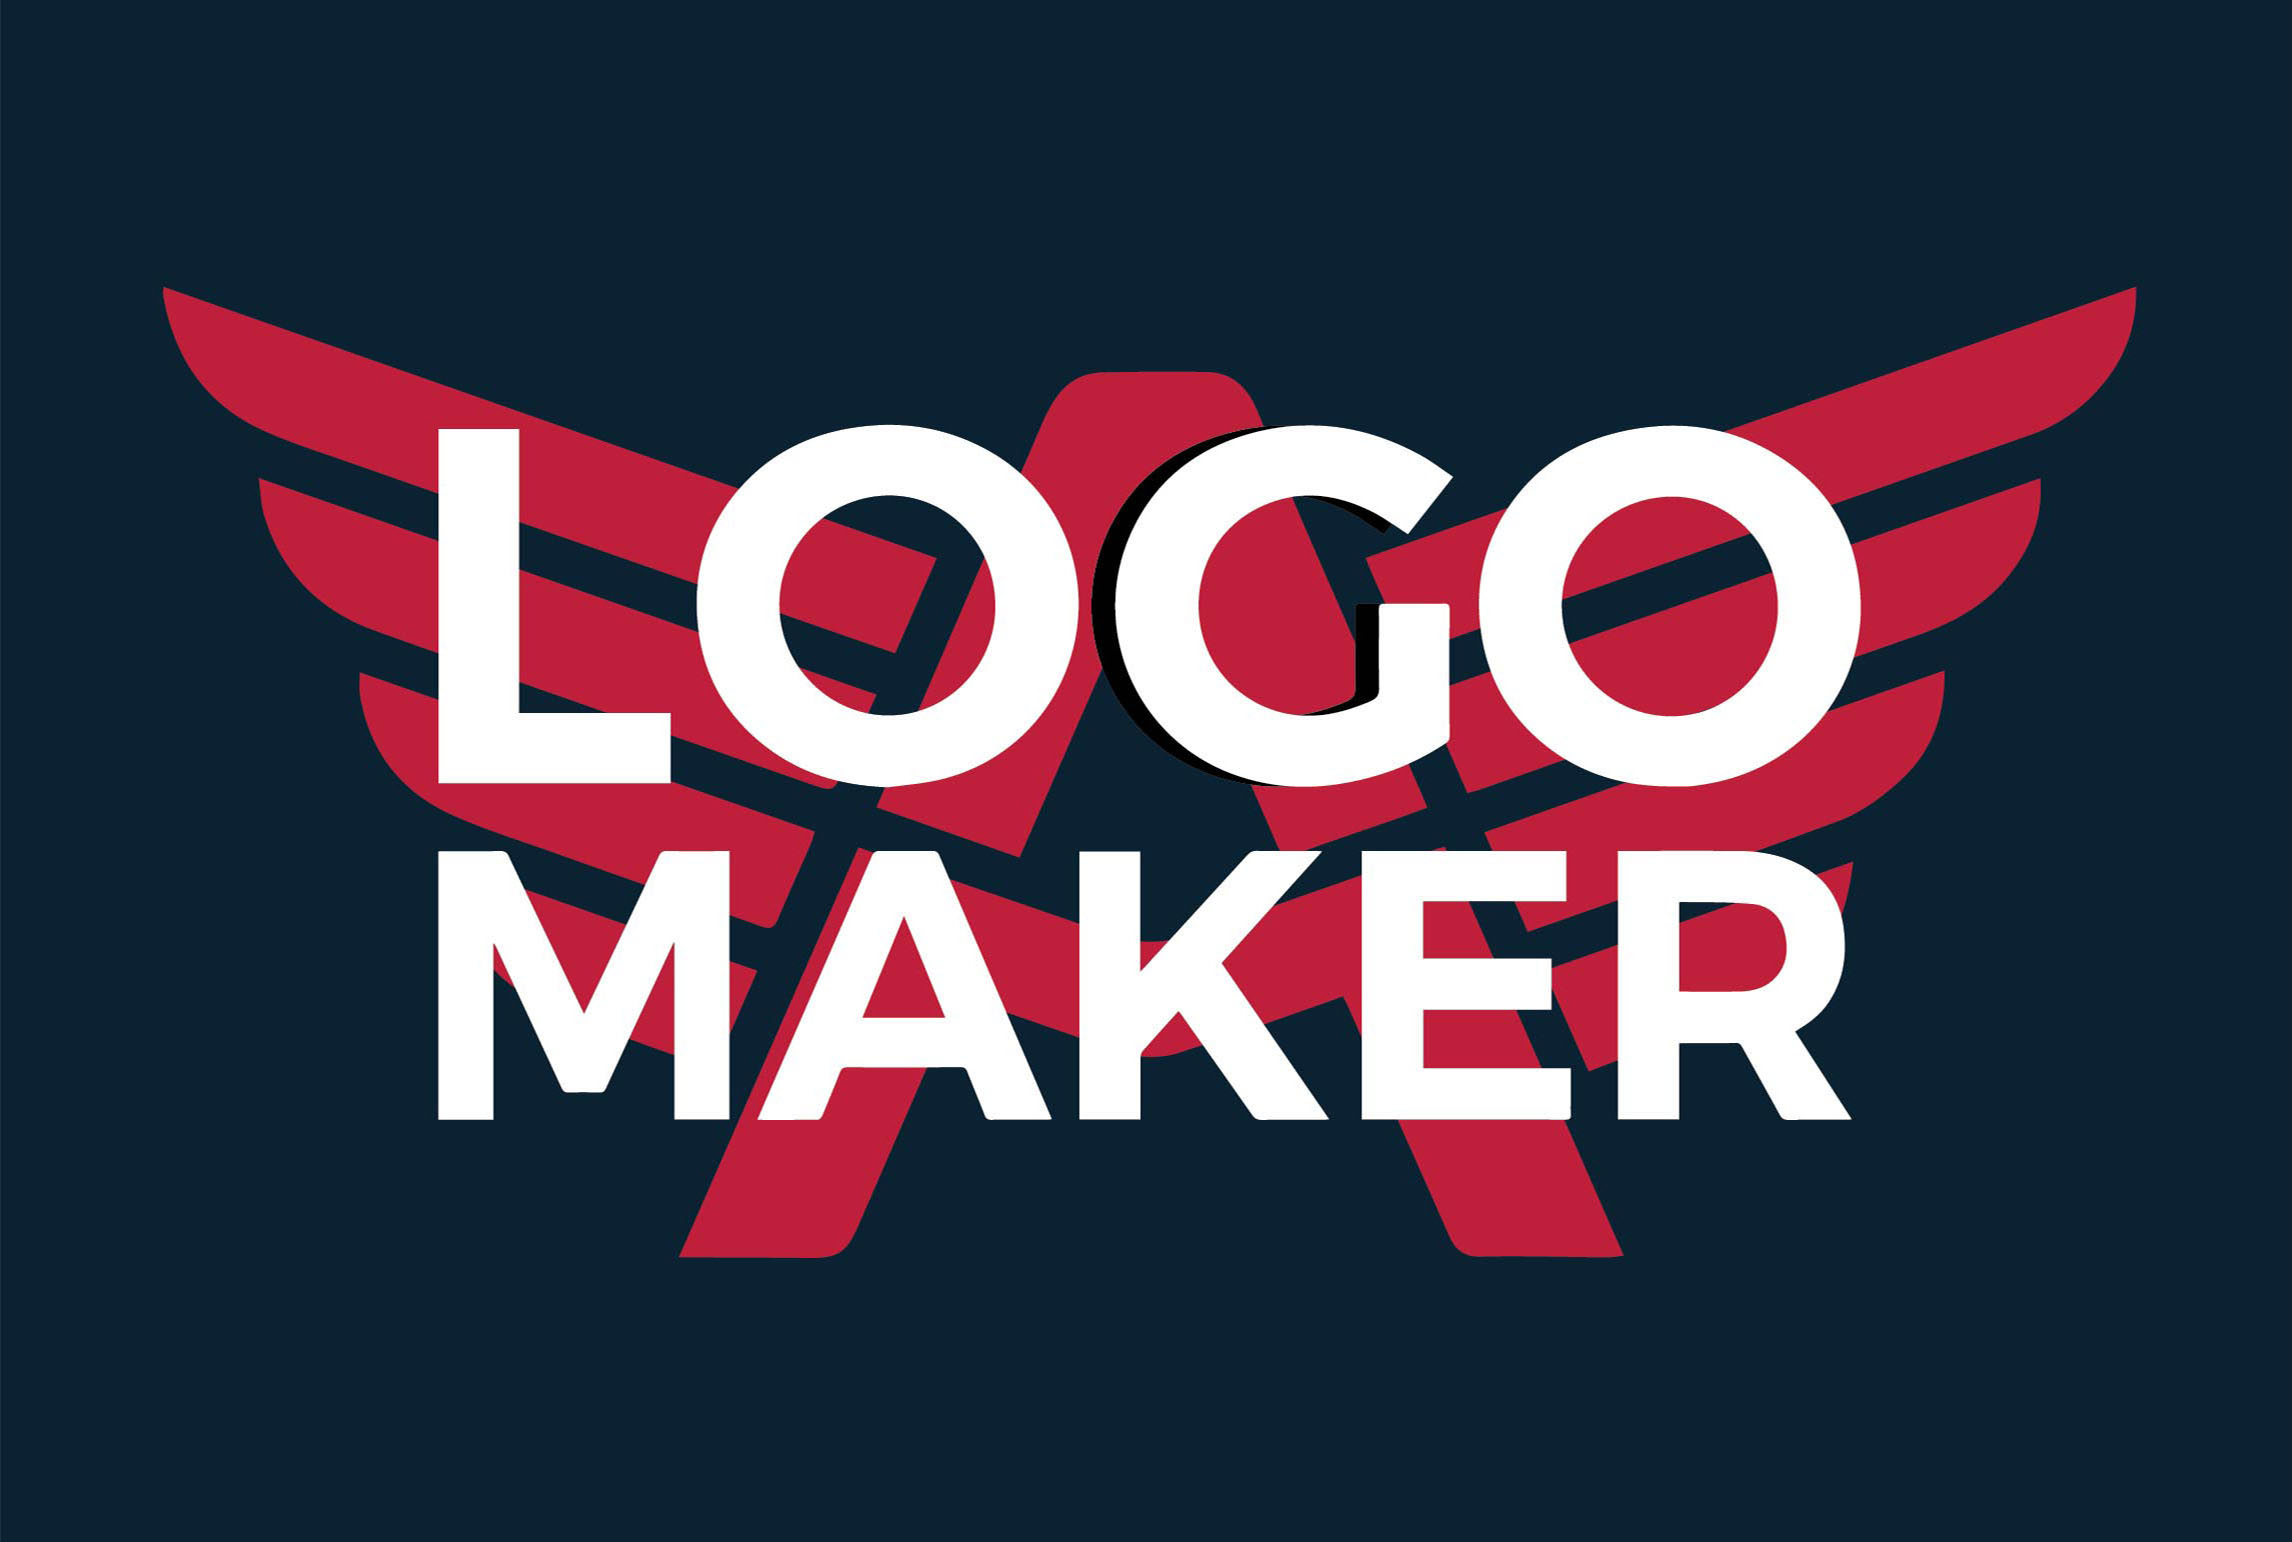 I will logo make business,  real estate,  pro design from my creation